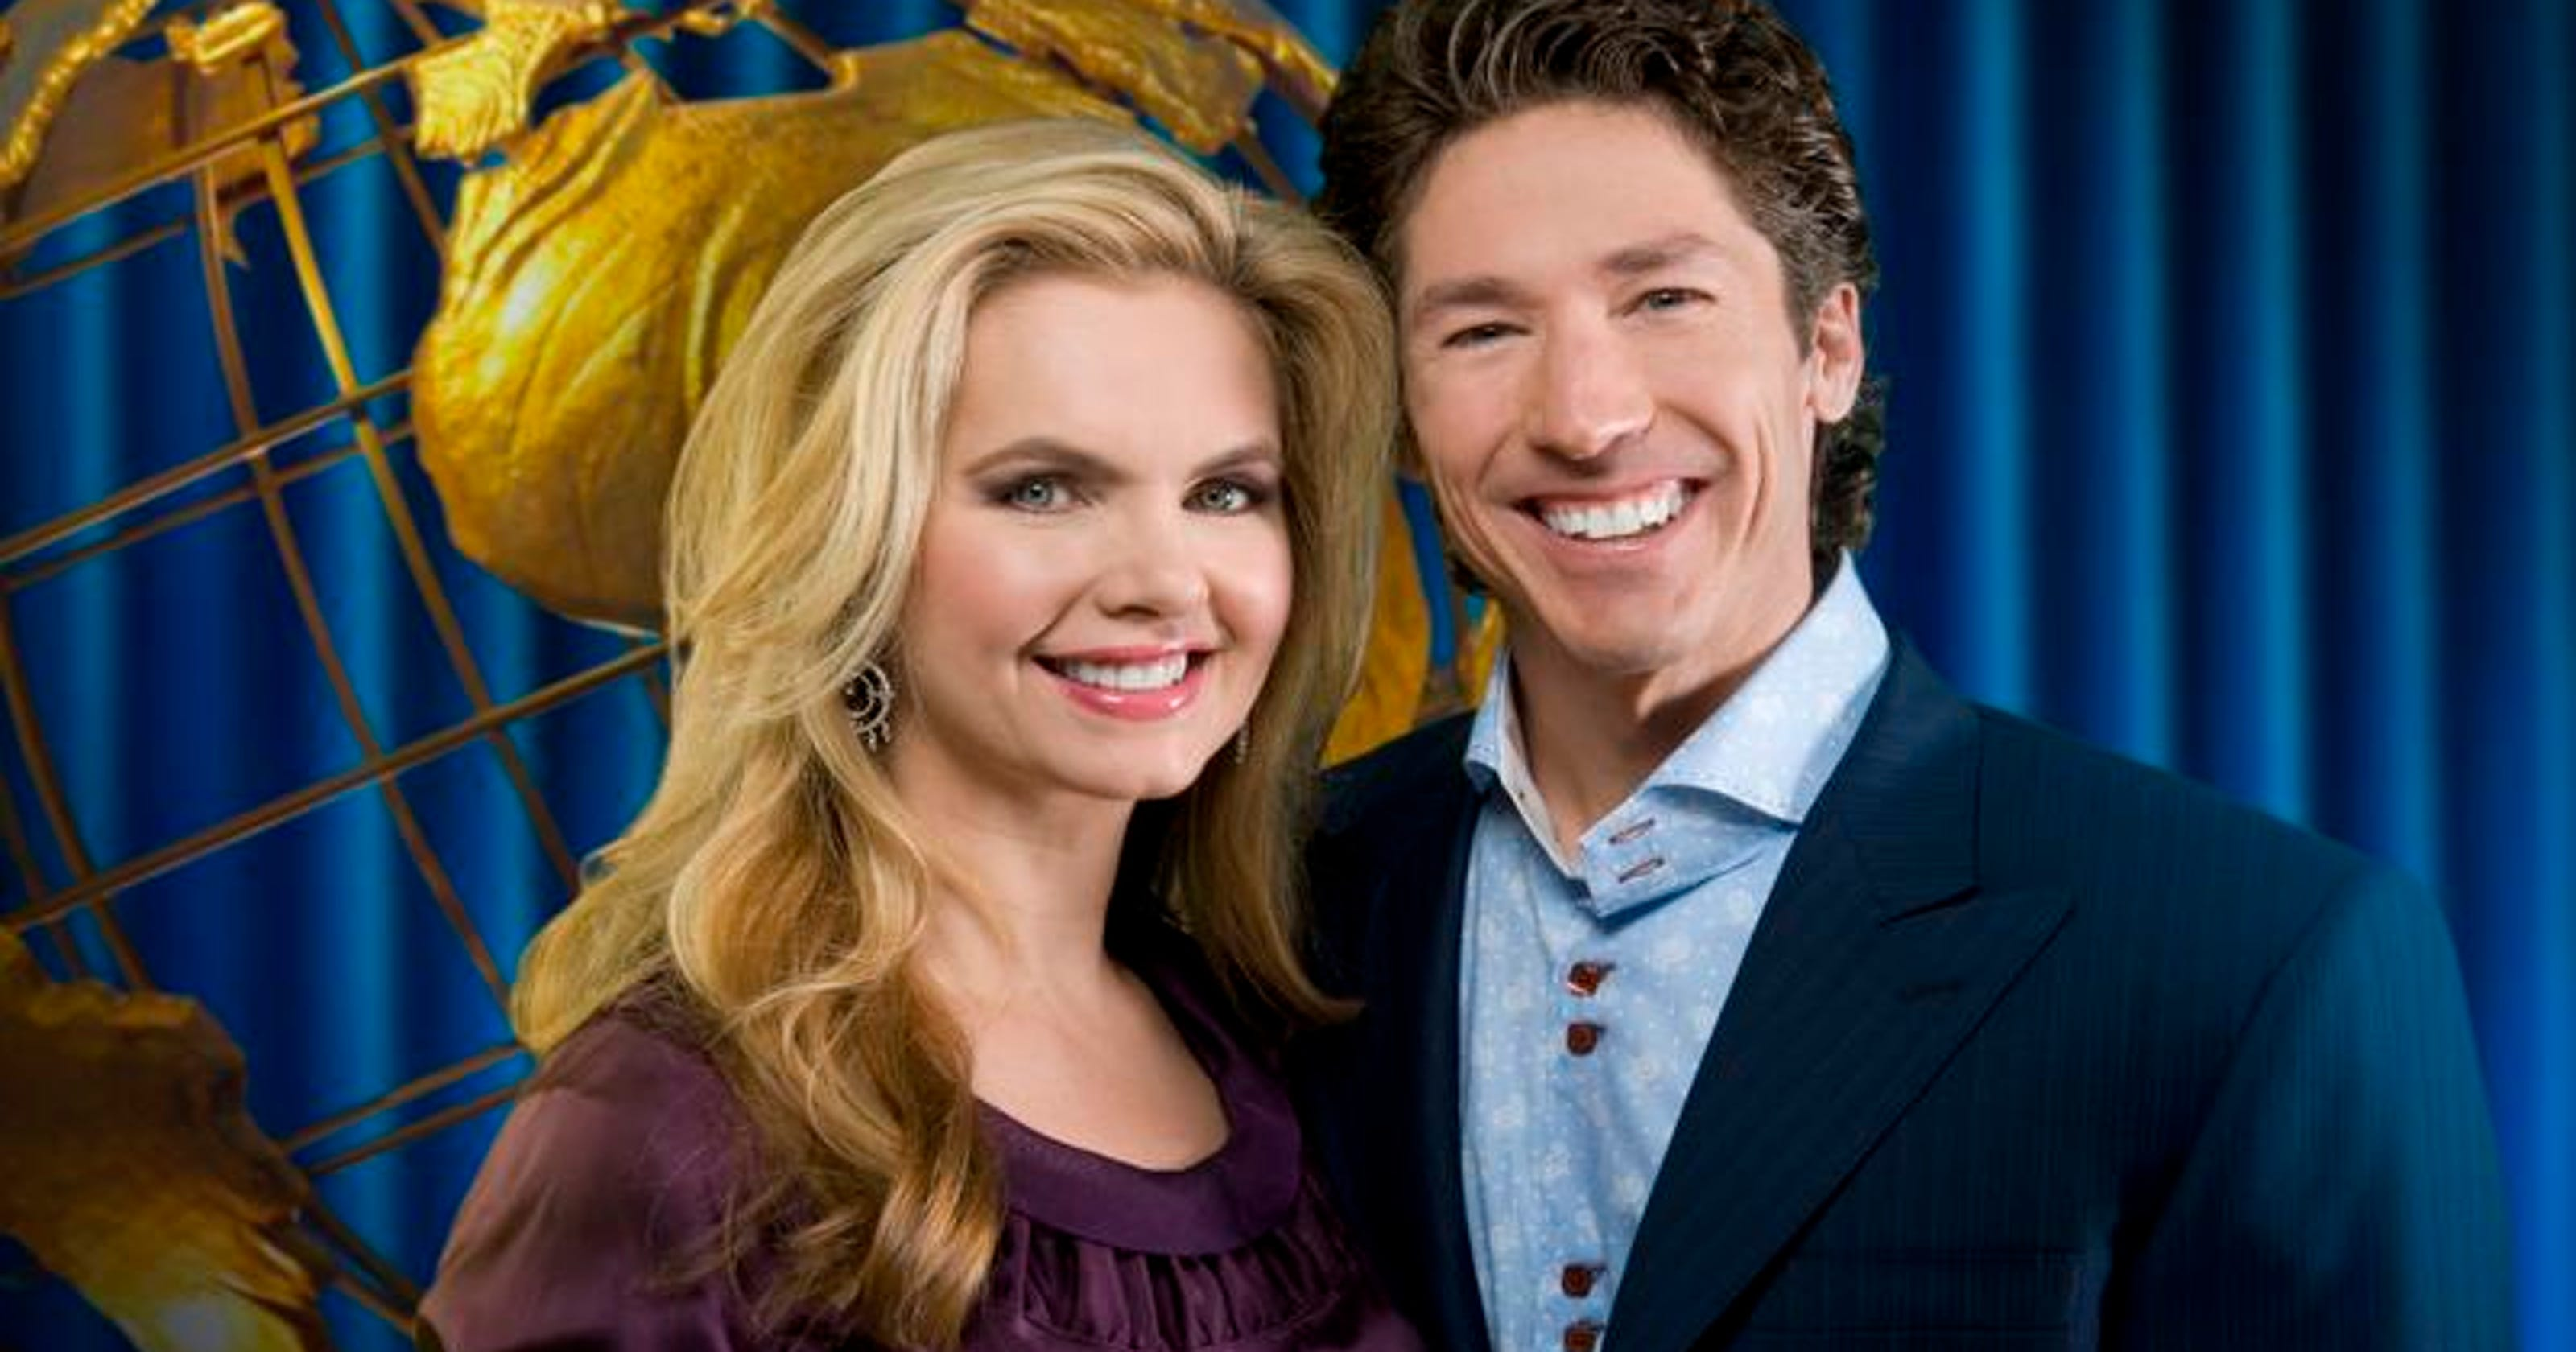 America's pastor: Joel and Victoria Osteen brings 'Night of